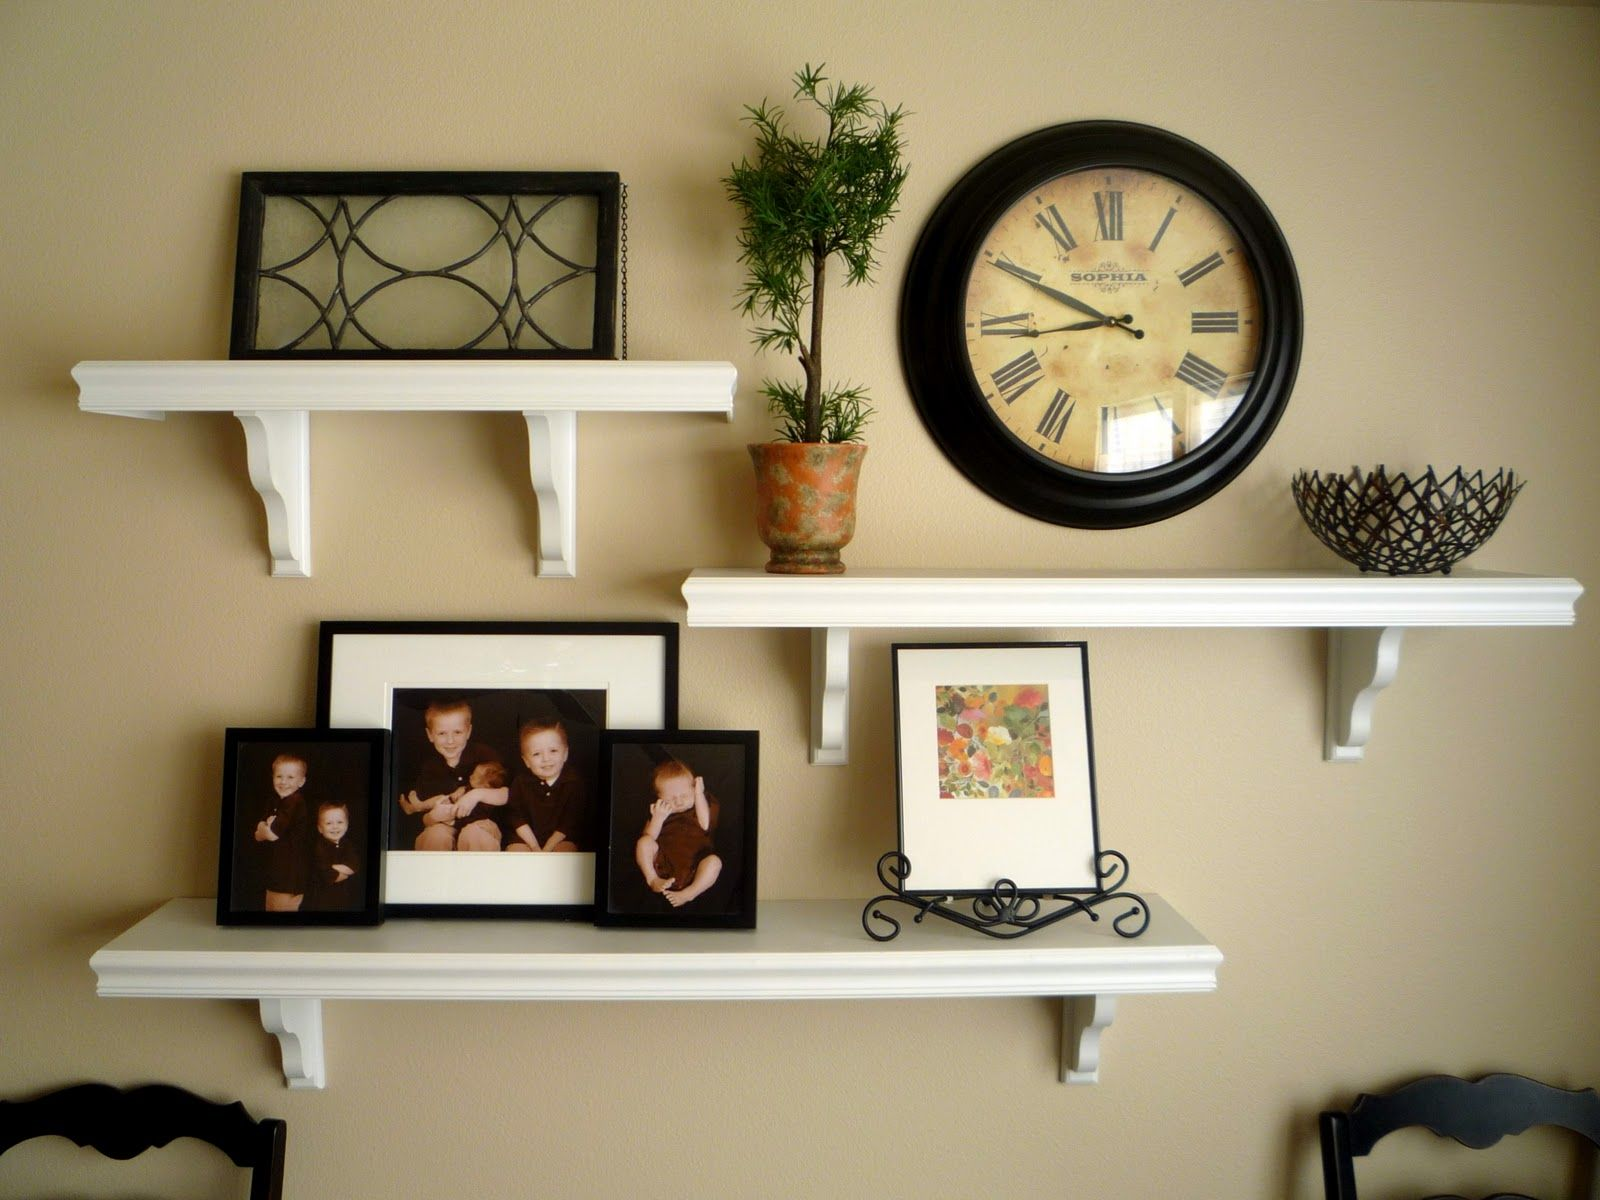 picture and shelves on wall together it all started after being inspired by thrifty decor. Black Bedroom Furniture Sets. Home Design Ideas